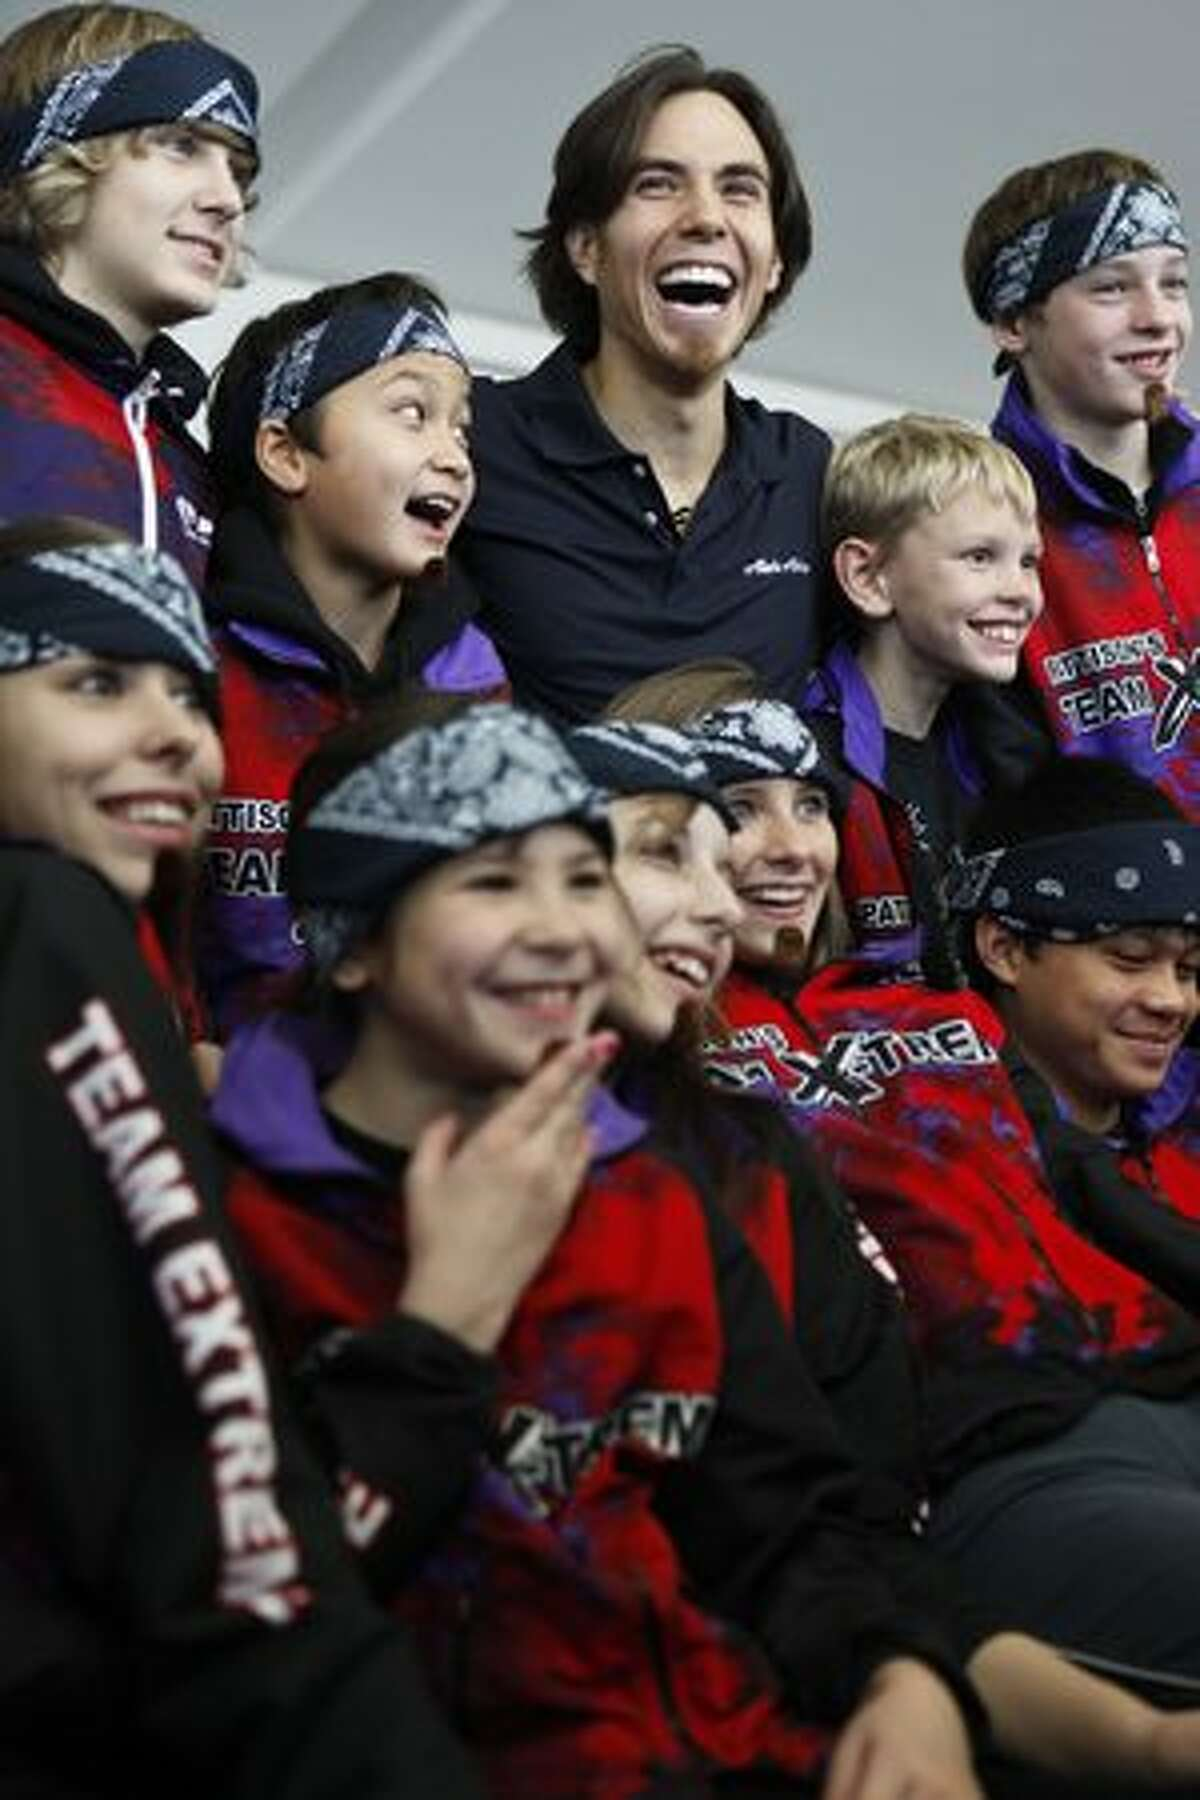 Members of Pattison's Team Extreme, a youth inline skating team that skates in Federal Way, pose with Apolo Ohno on Nov. 17, 2009.